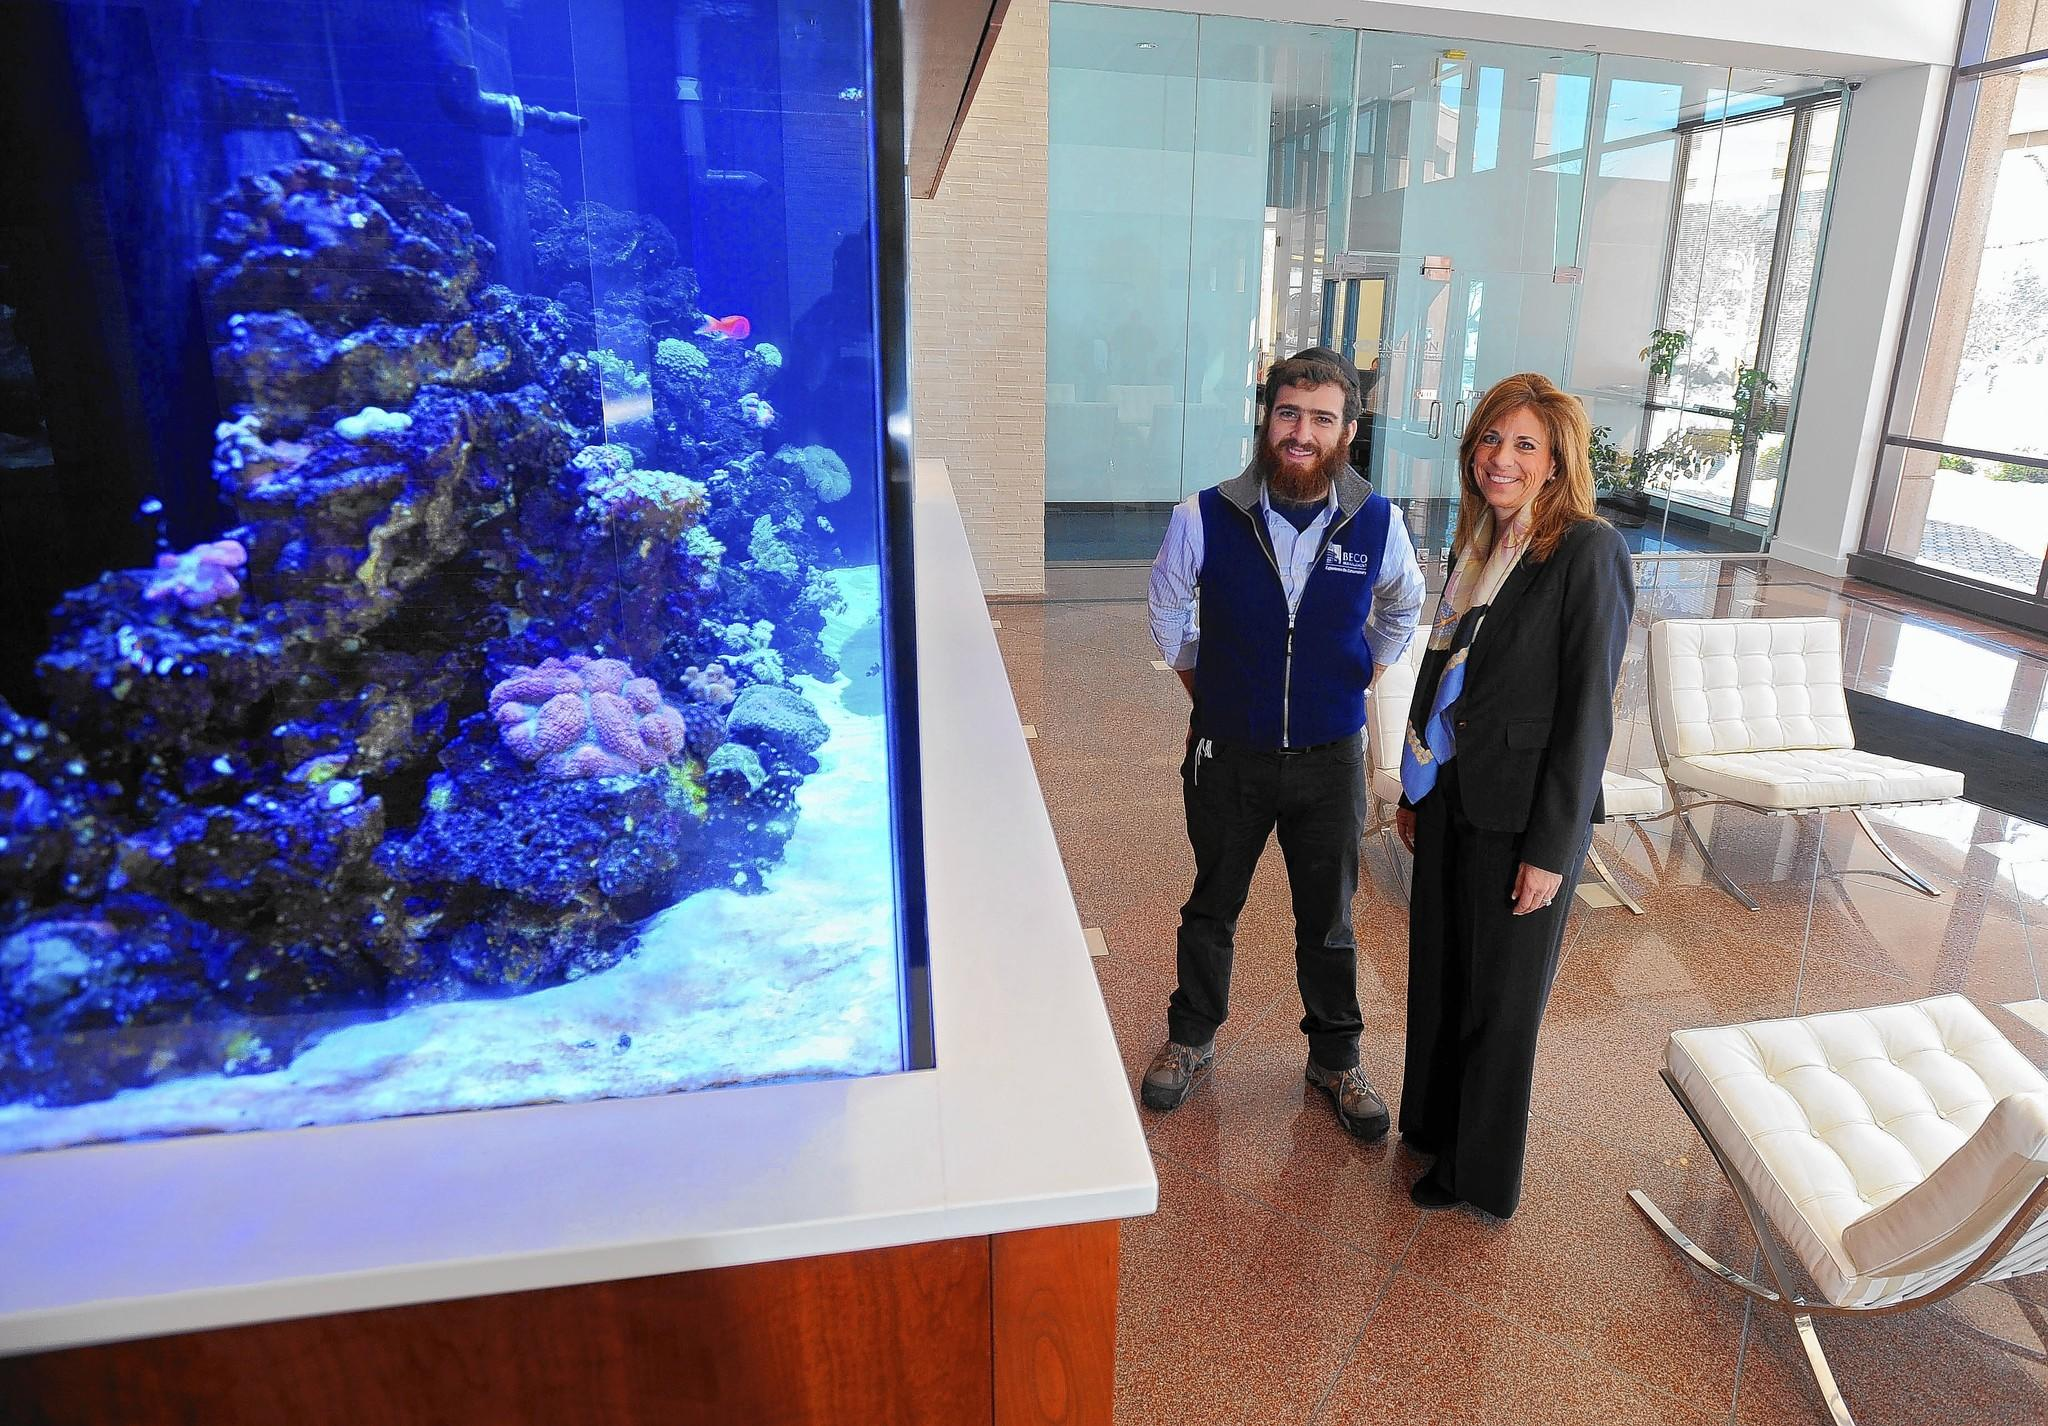 Roberta Levy Liss (right) and Levi Cohen of Beco Management say fish tanks and other high-end amenities help their office properties stand out in a crowded market.